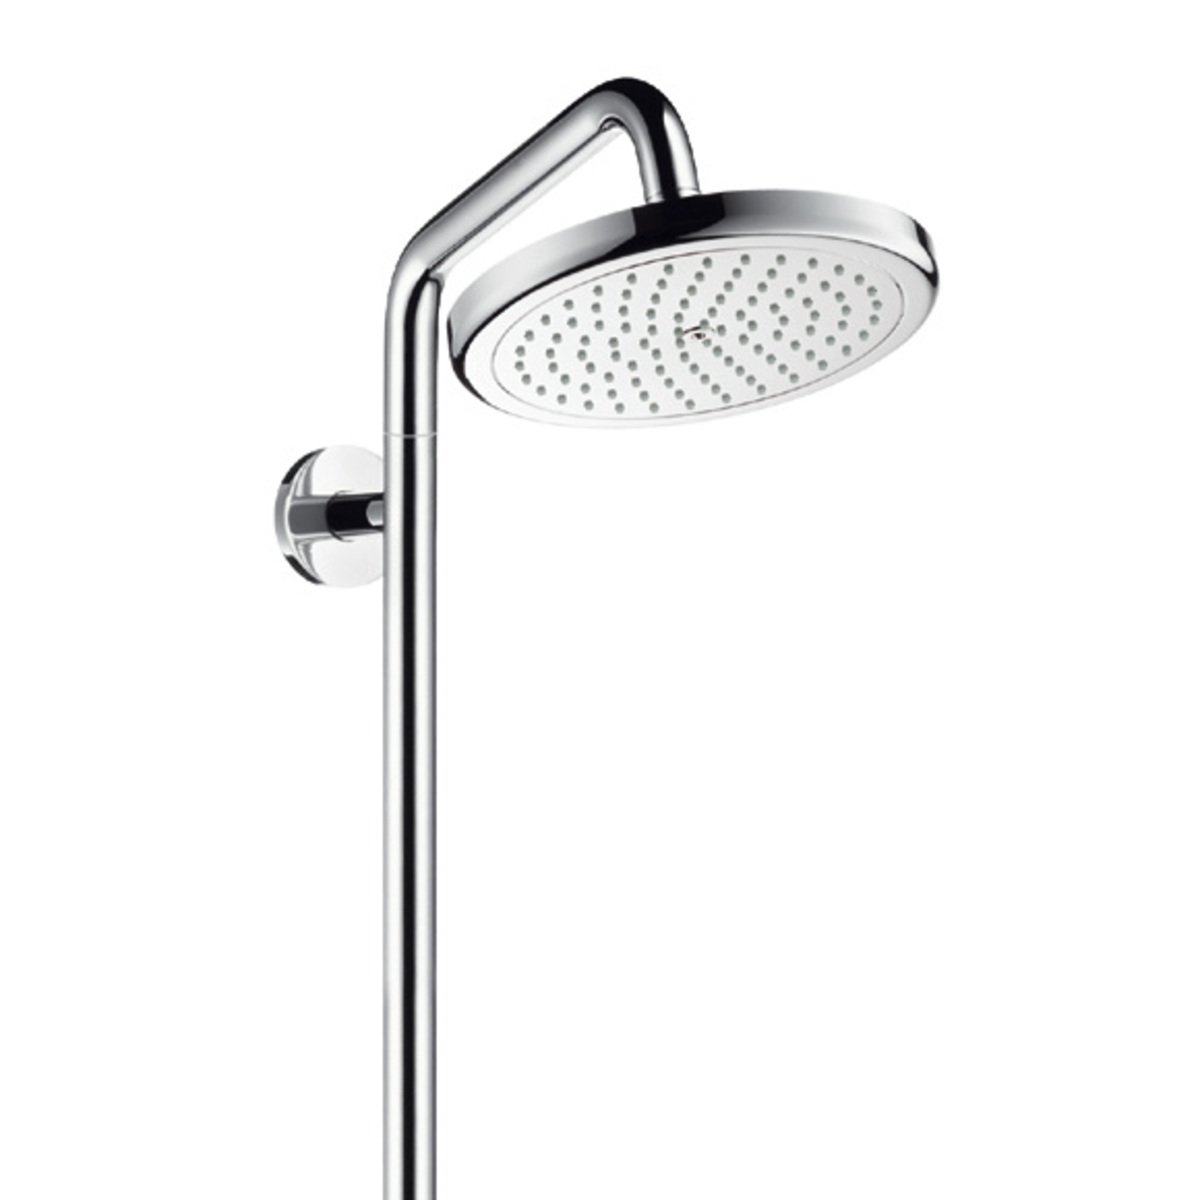 hansgrohe croma 220 showerpipe met douchekraan. Black Bedroom Furniture Sets. Home Design Ideas